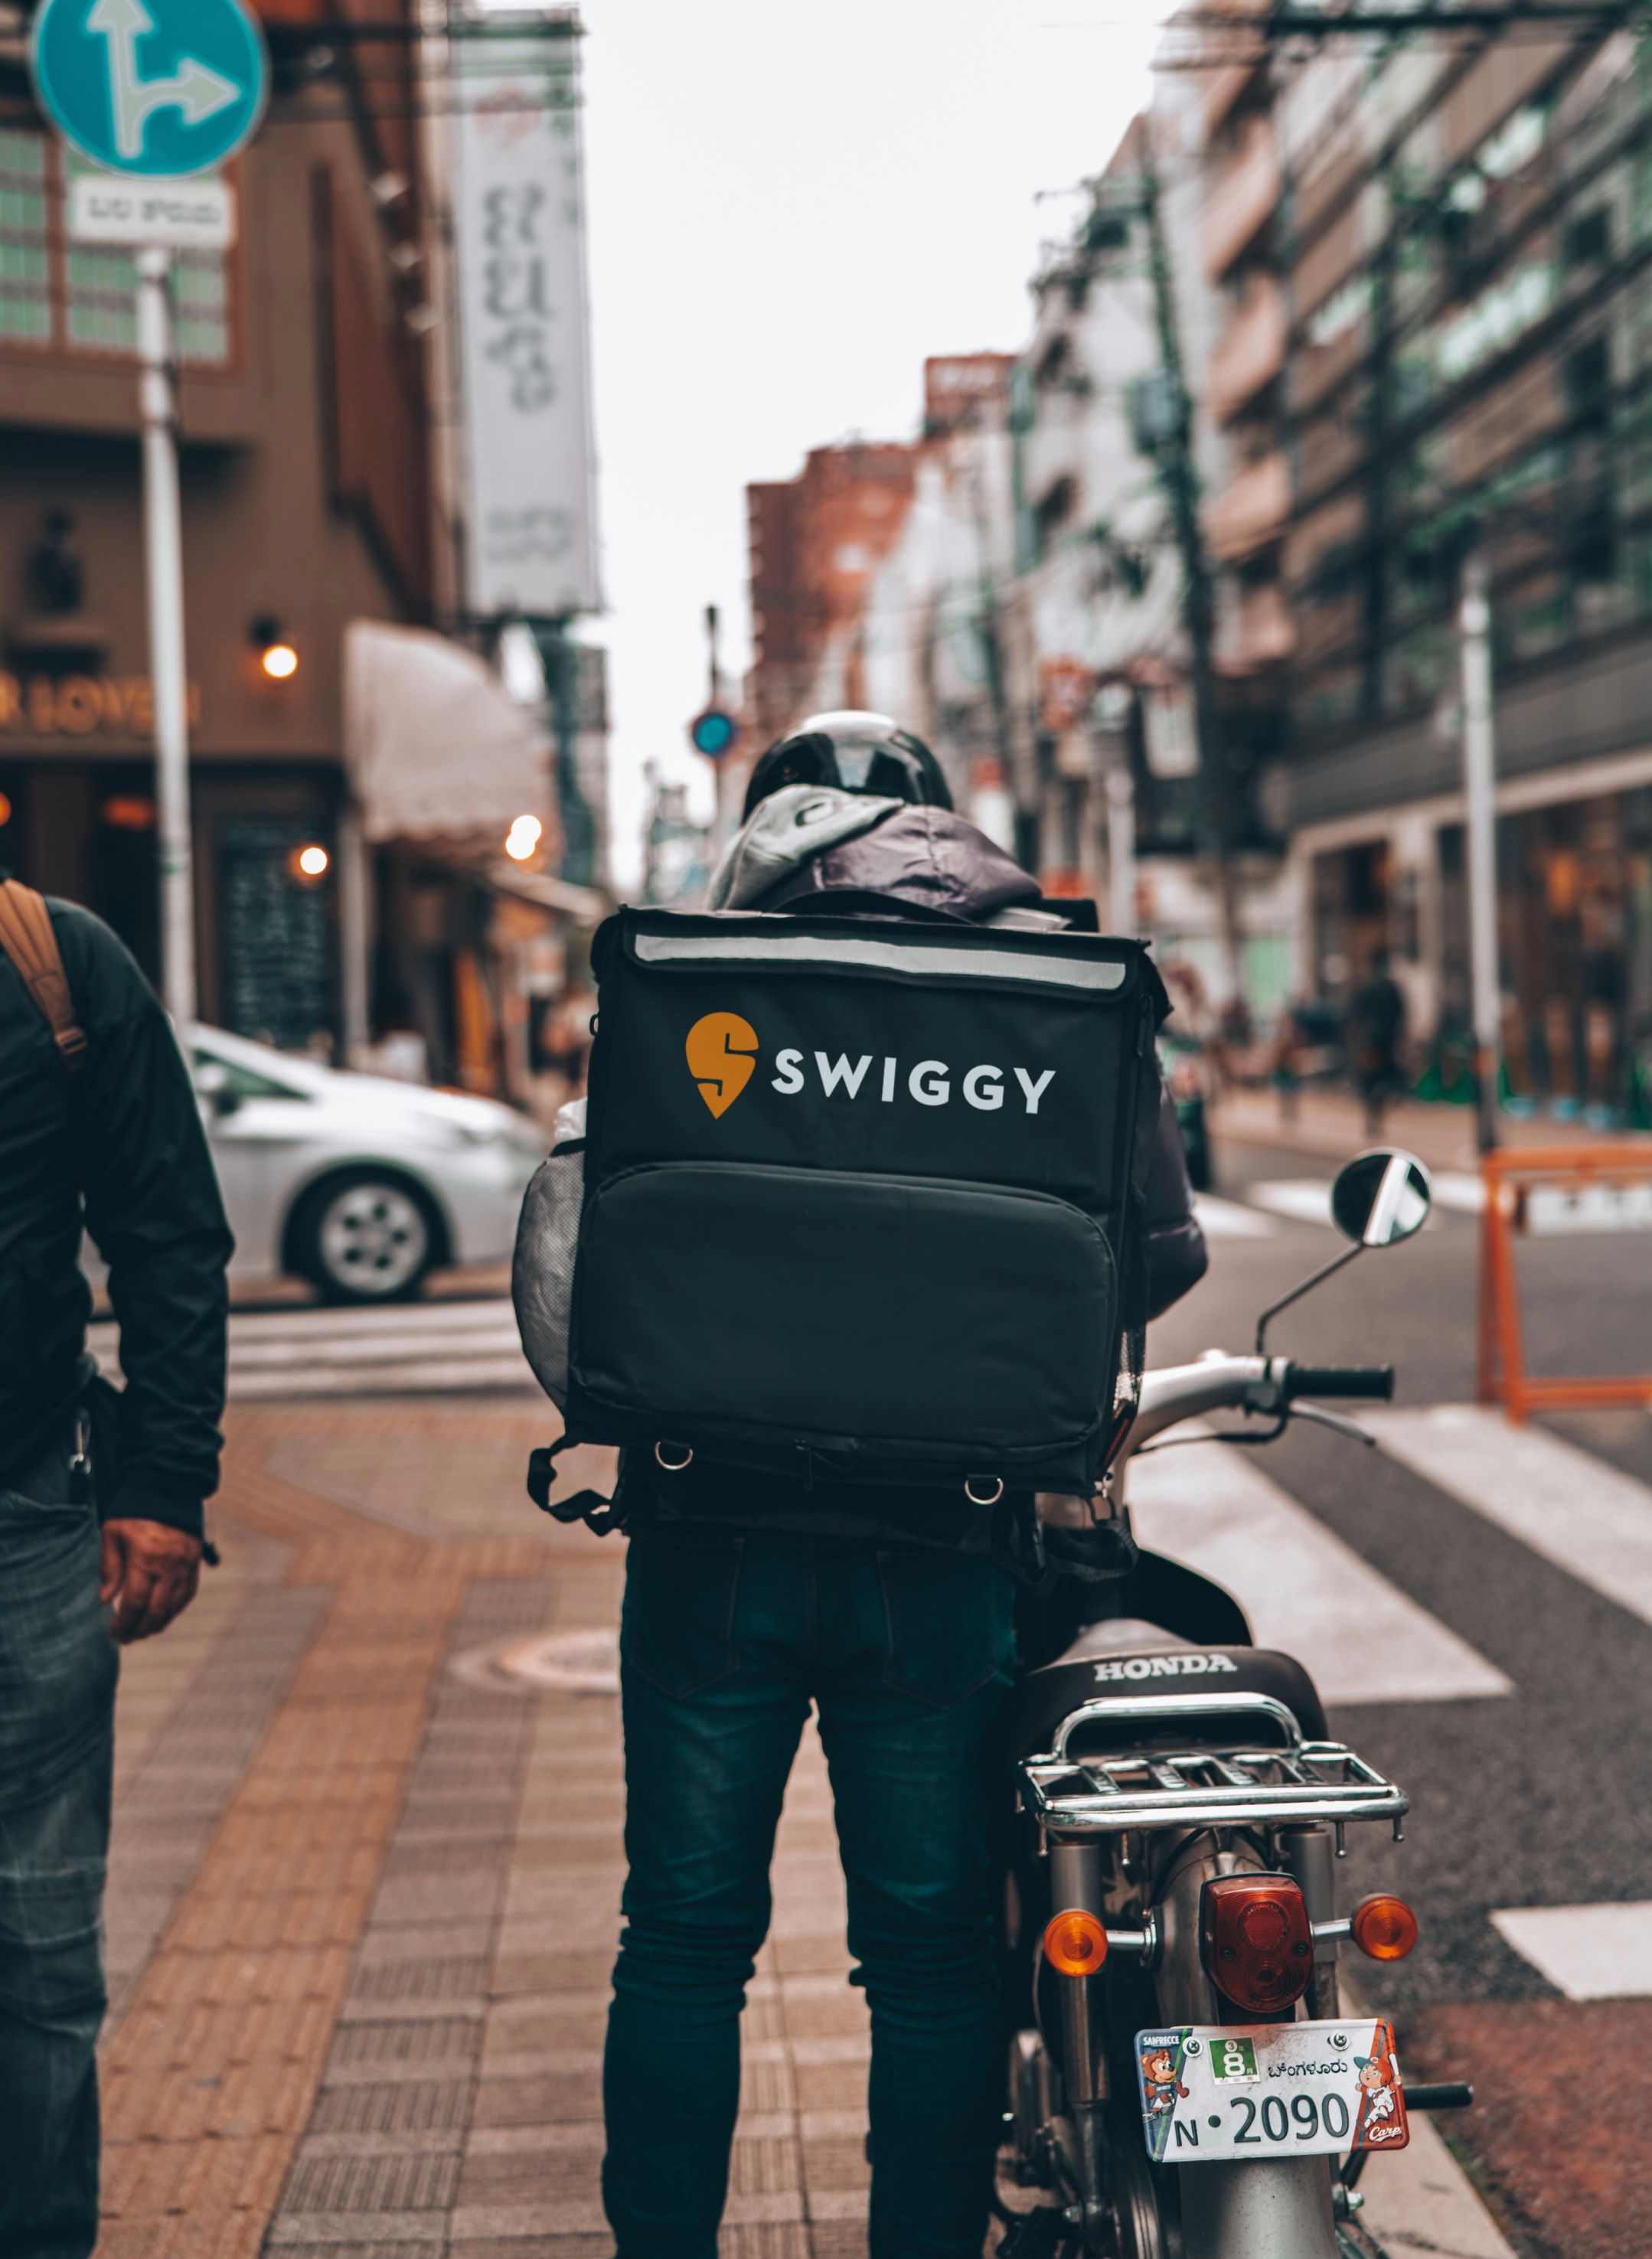 A rider on their way to deliver food for Swiggy